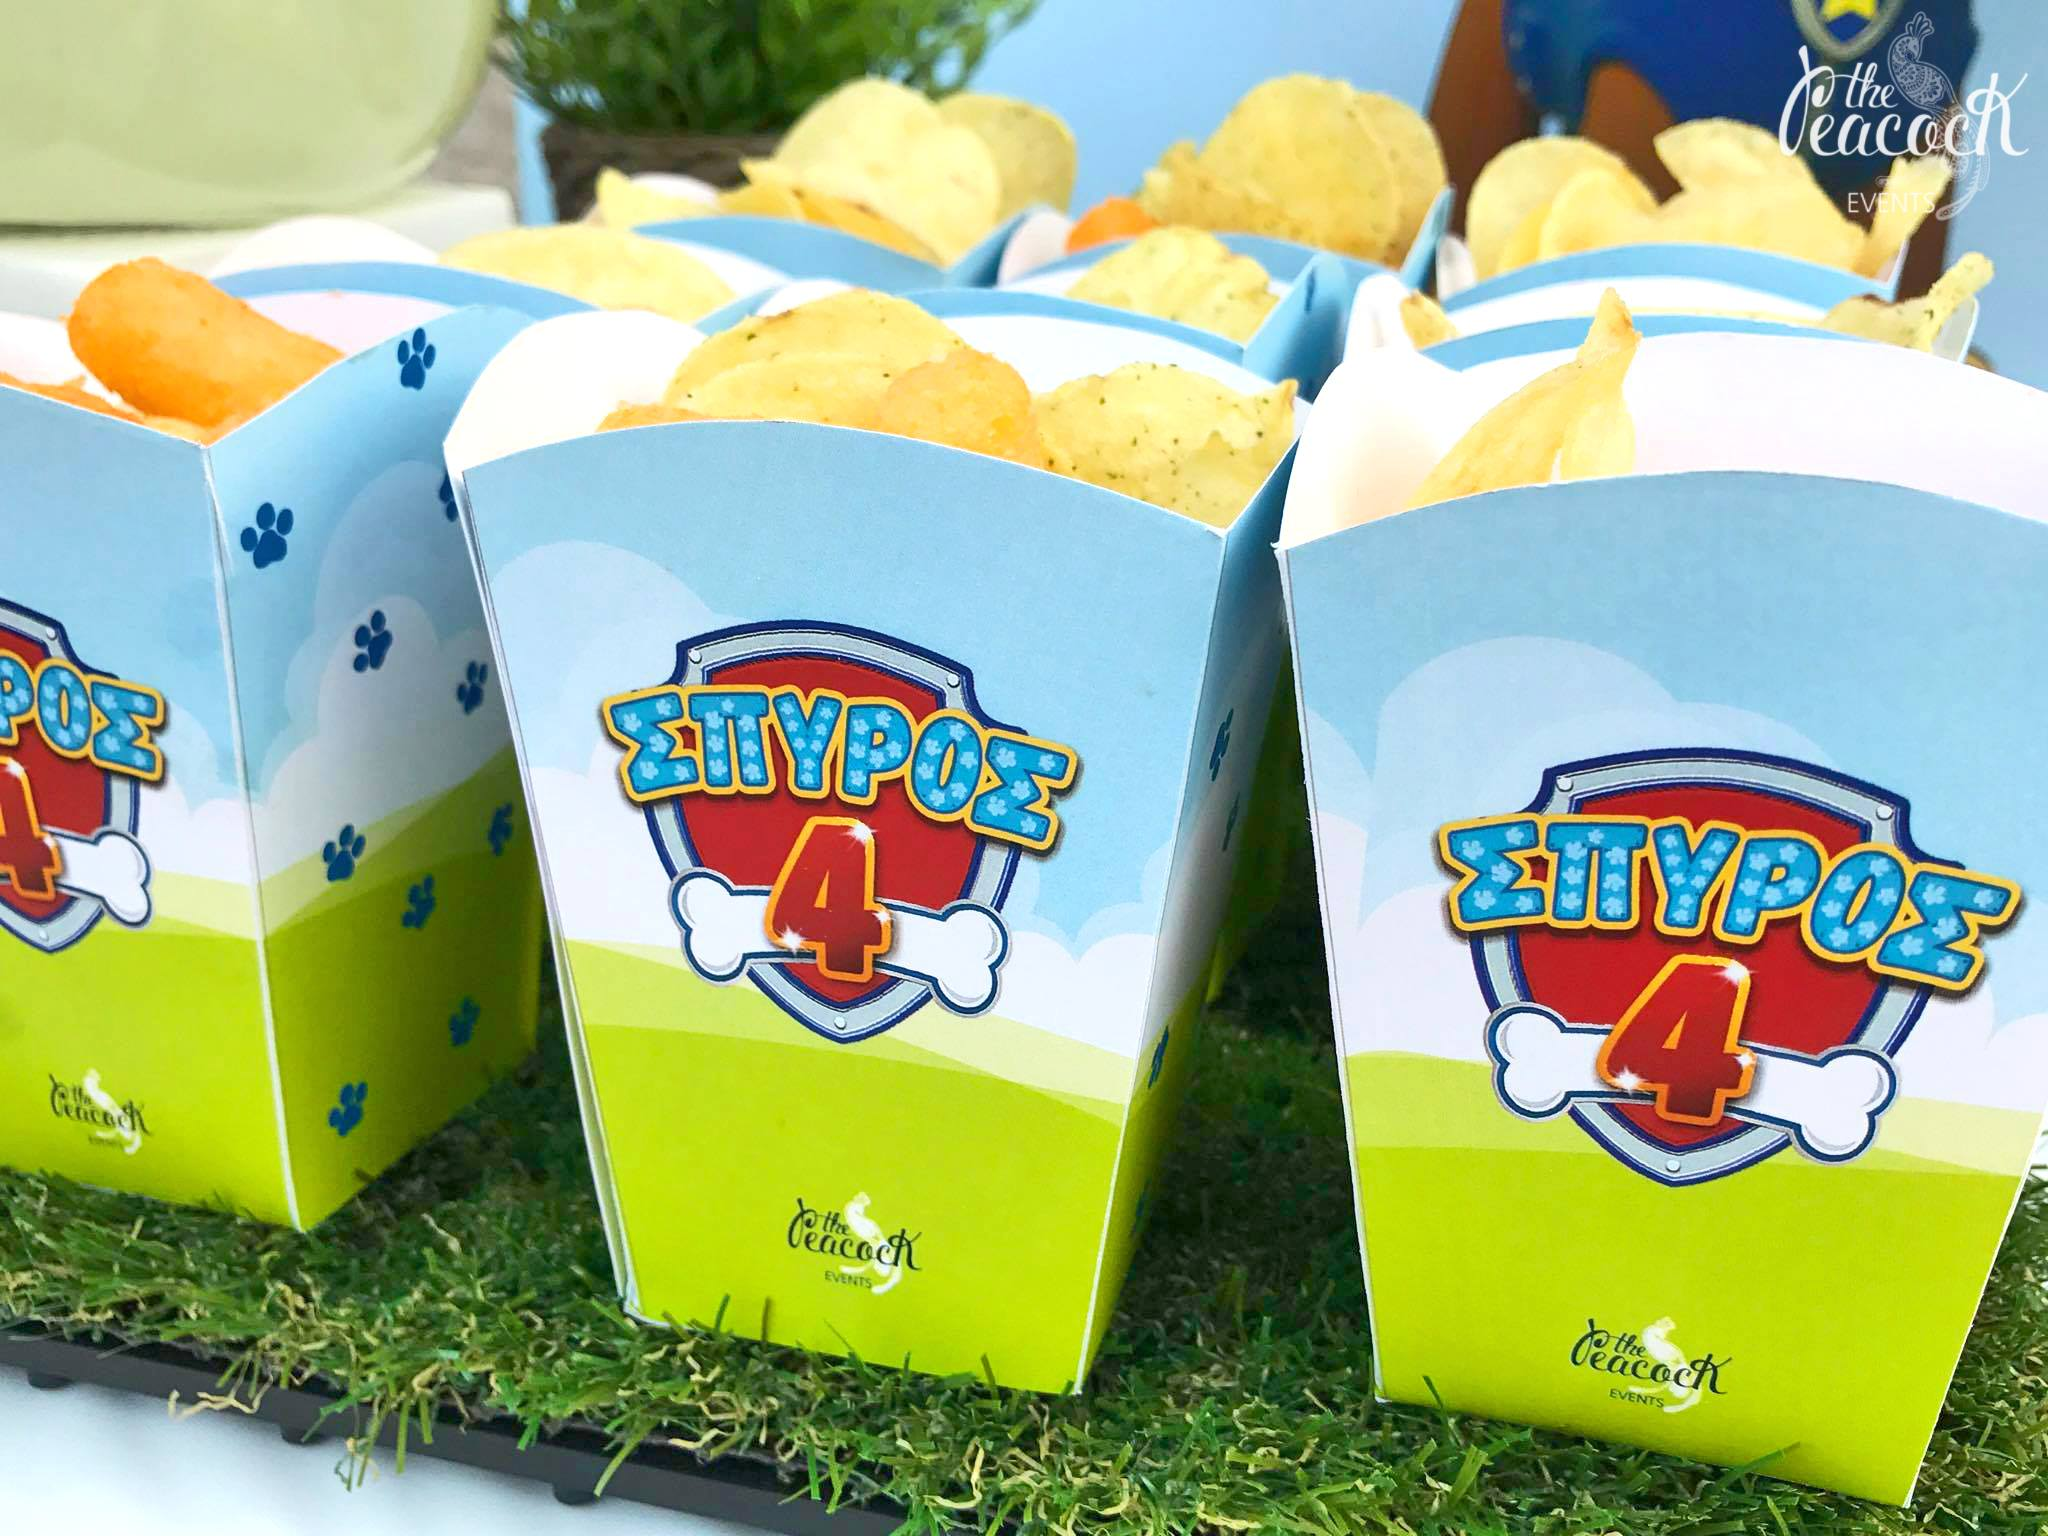 Spyro S 4th Birthday Paw Patrol The Peacock Events